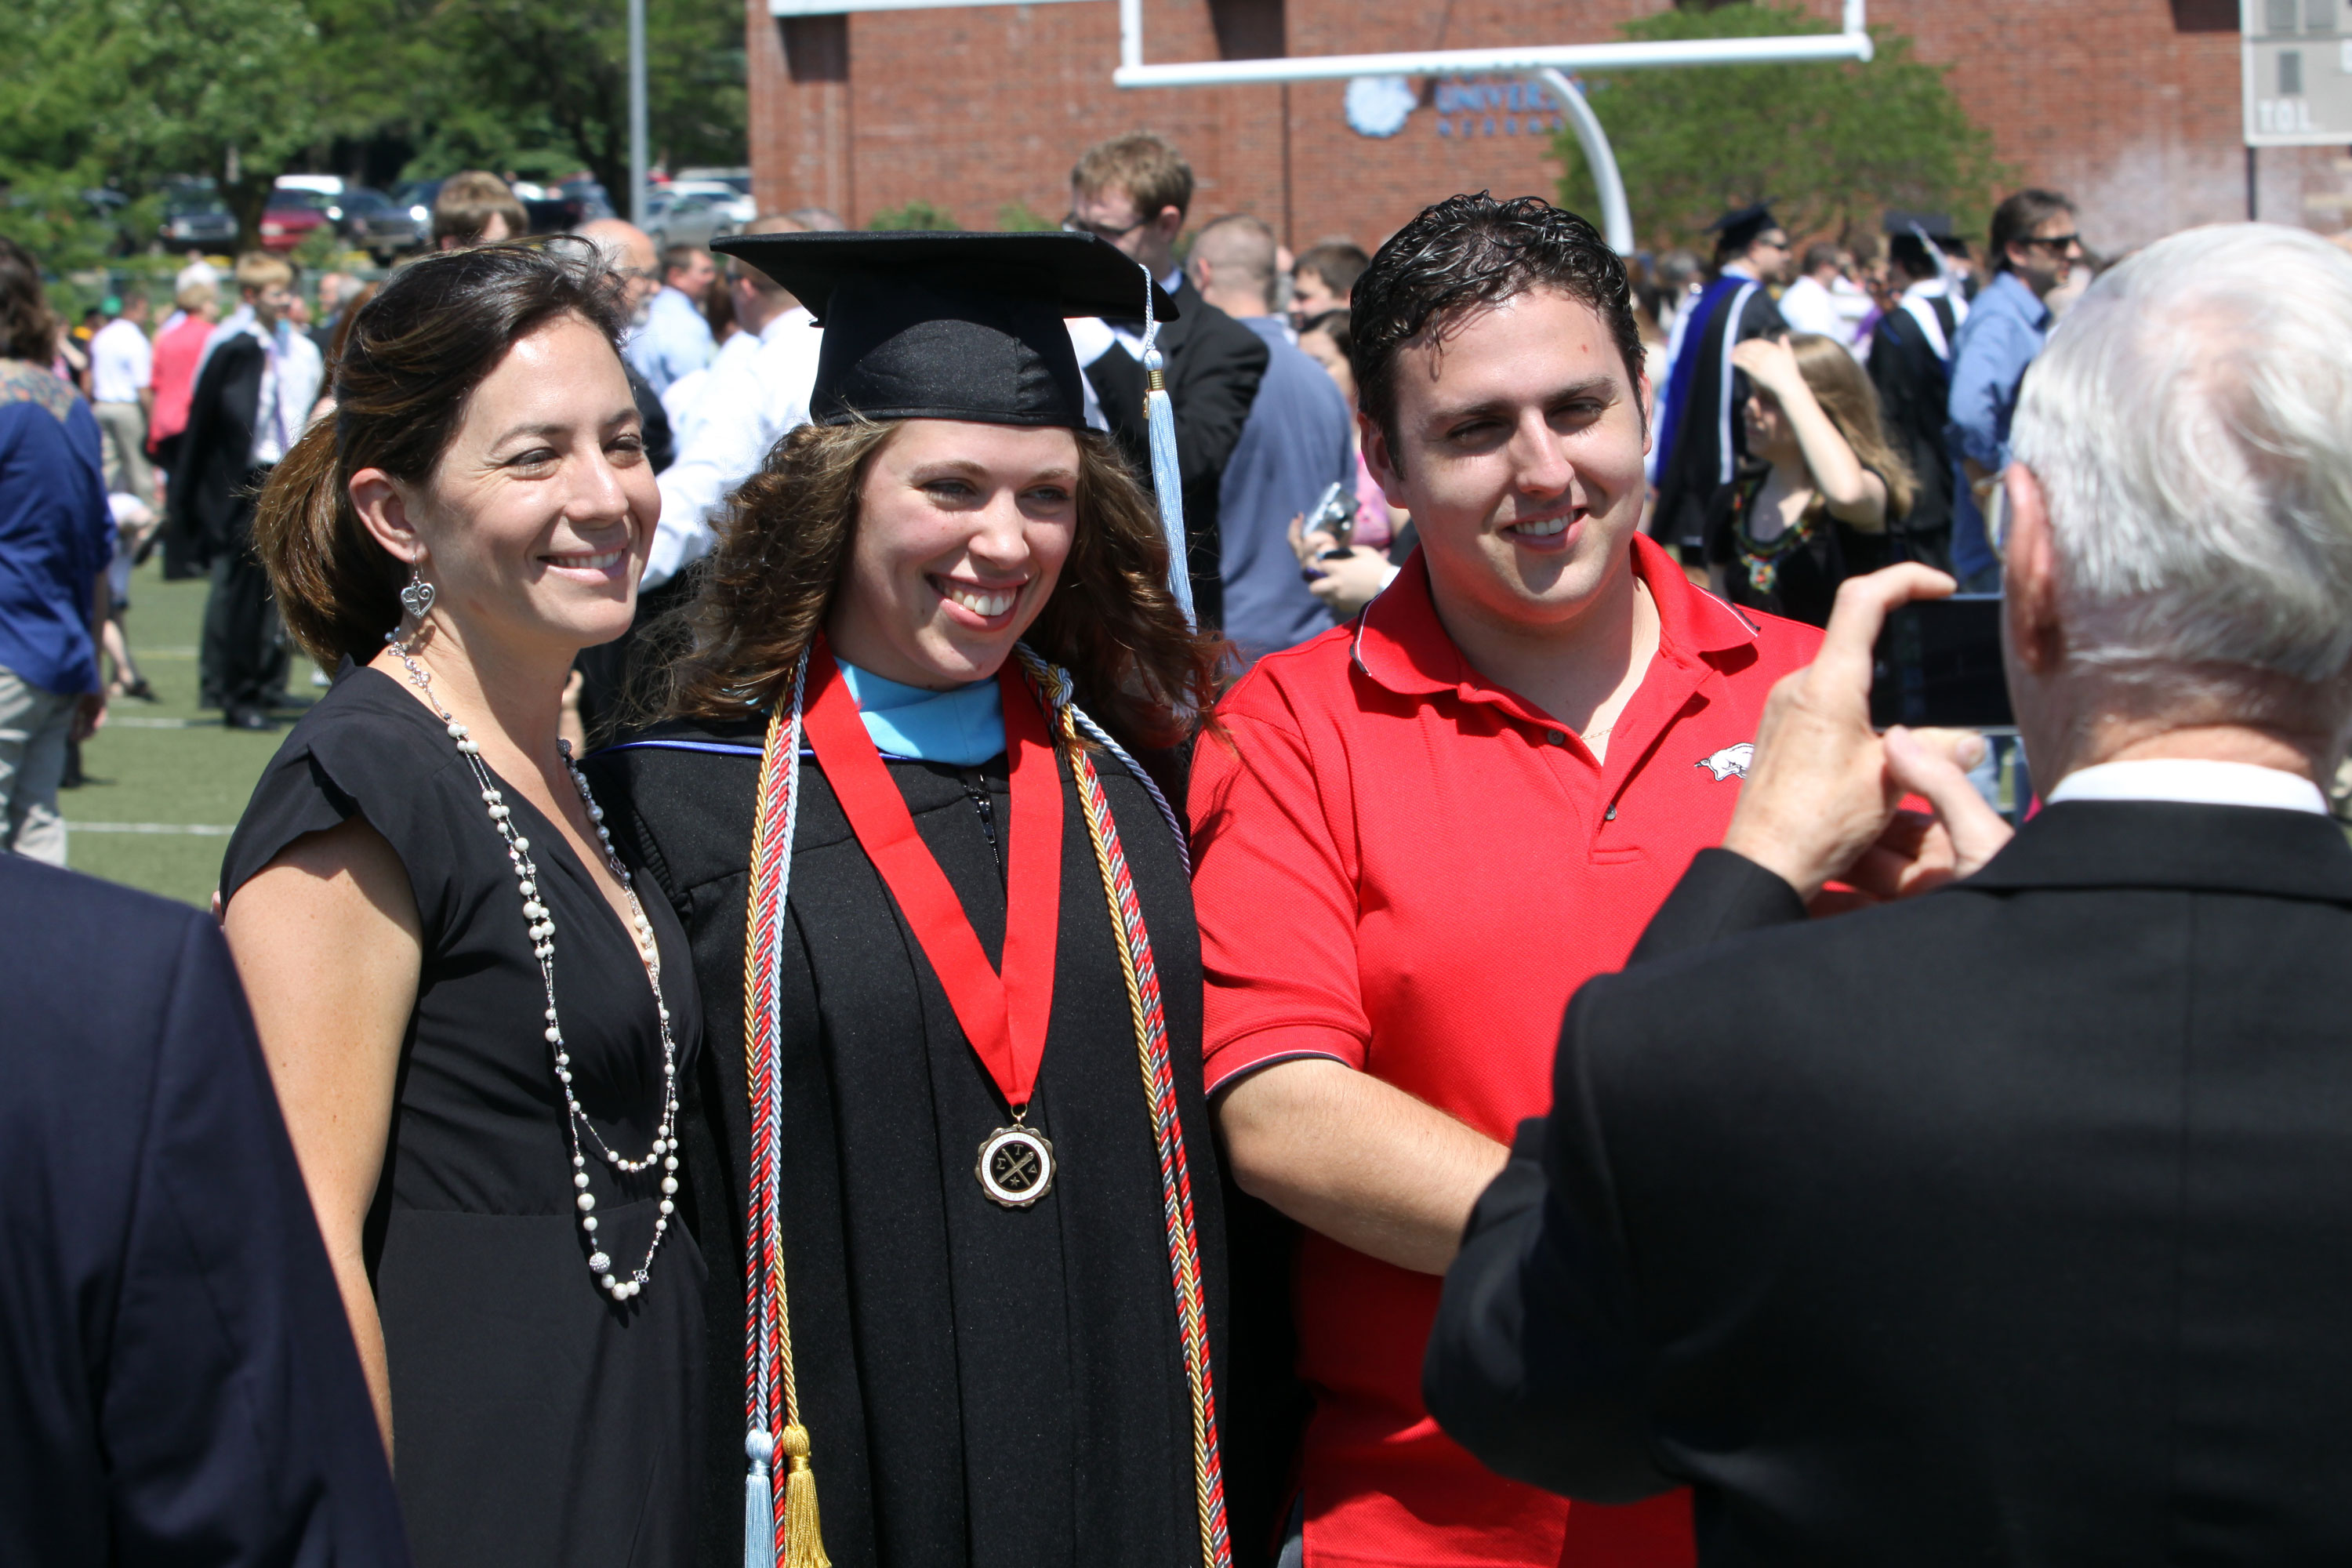 Dorothy Avery, one of Concordia University, Nebraska's 585 graduates, poses with family after commencement.